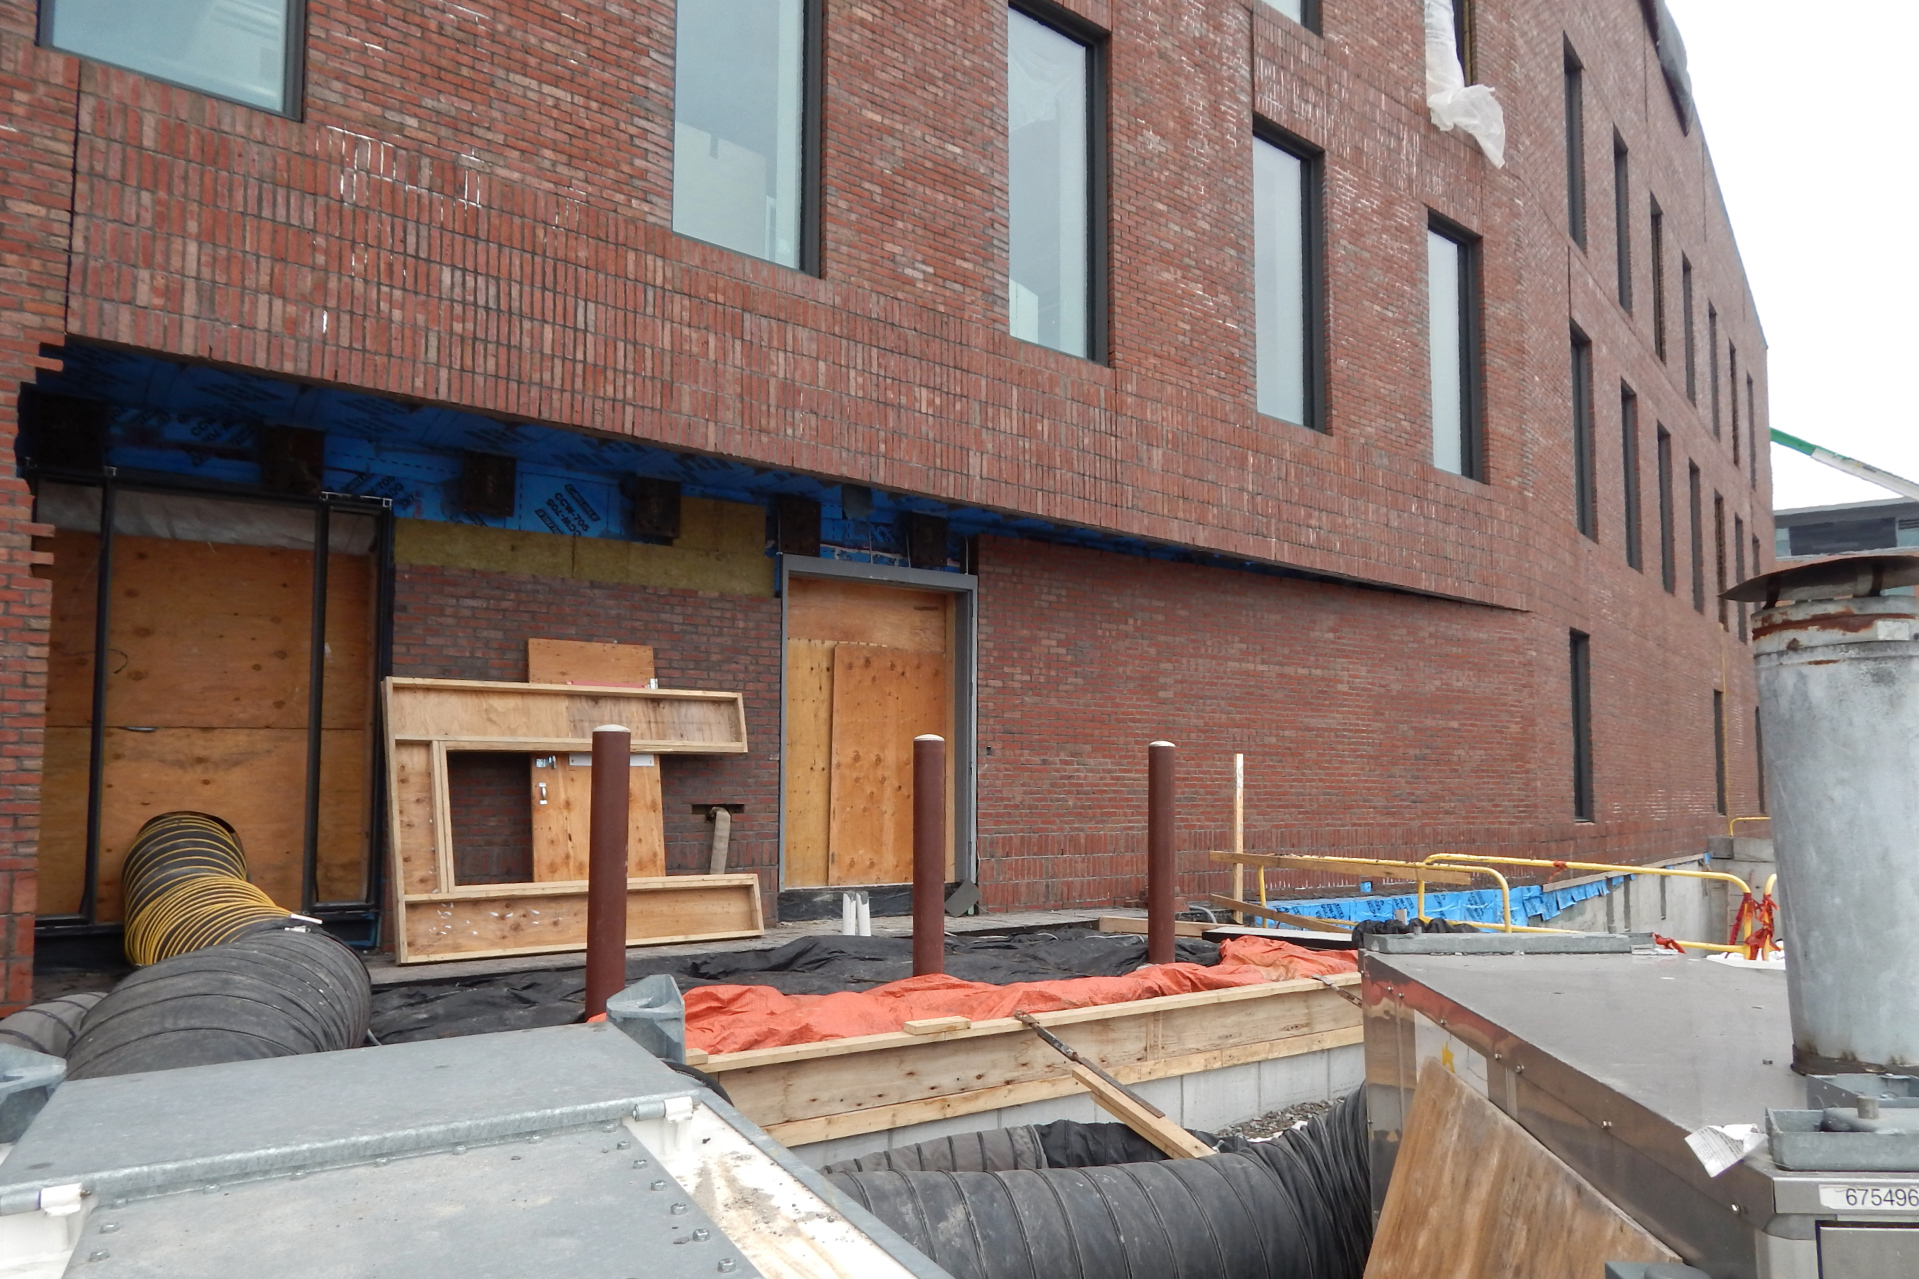 A loading dock under construction on the science center's south side. The black and orange fabrics are blankets to keep concrete warm as it cures. The accordion tube brings heat into the building from the temporary space heater in the foreground. (Doug Hubley/Bates College)